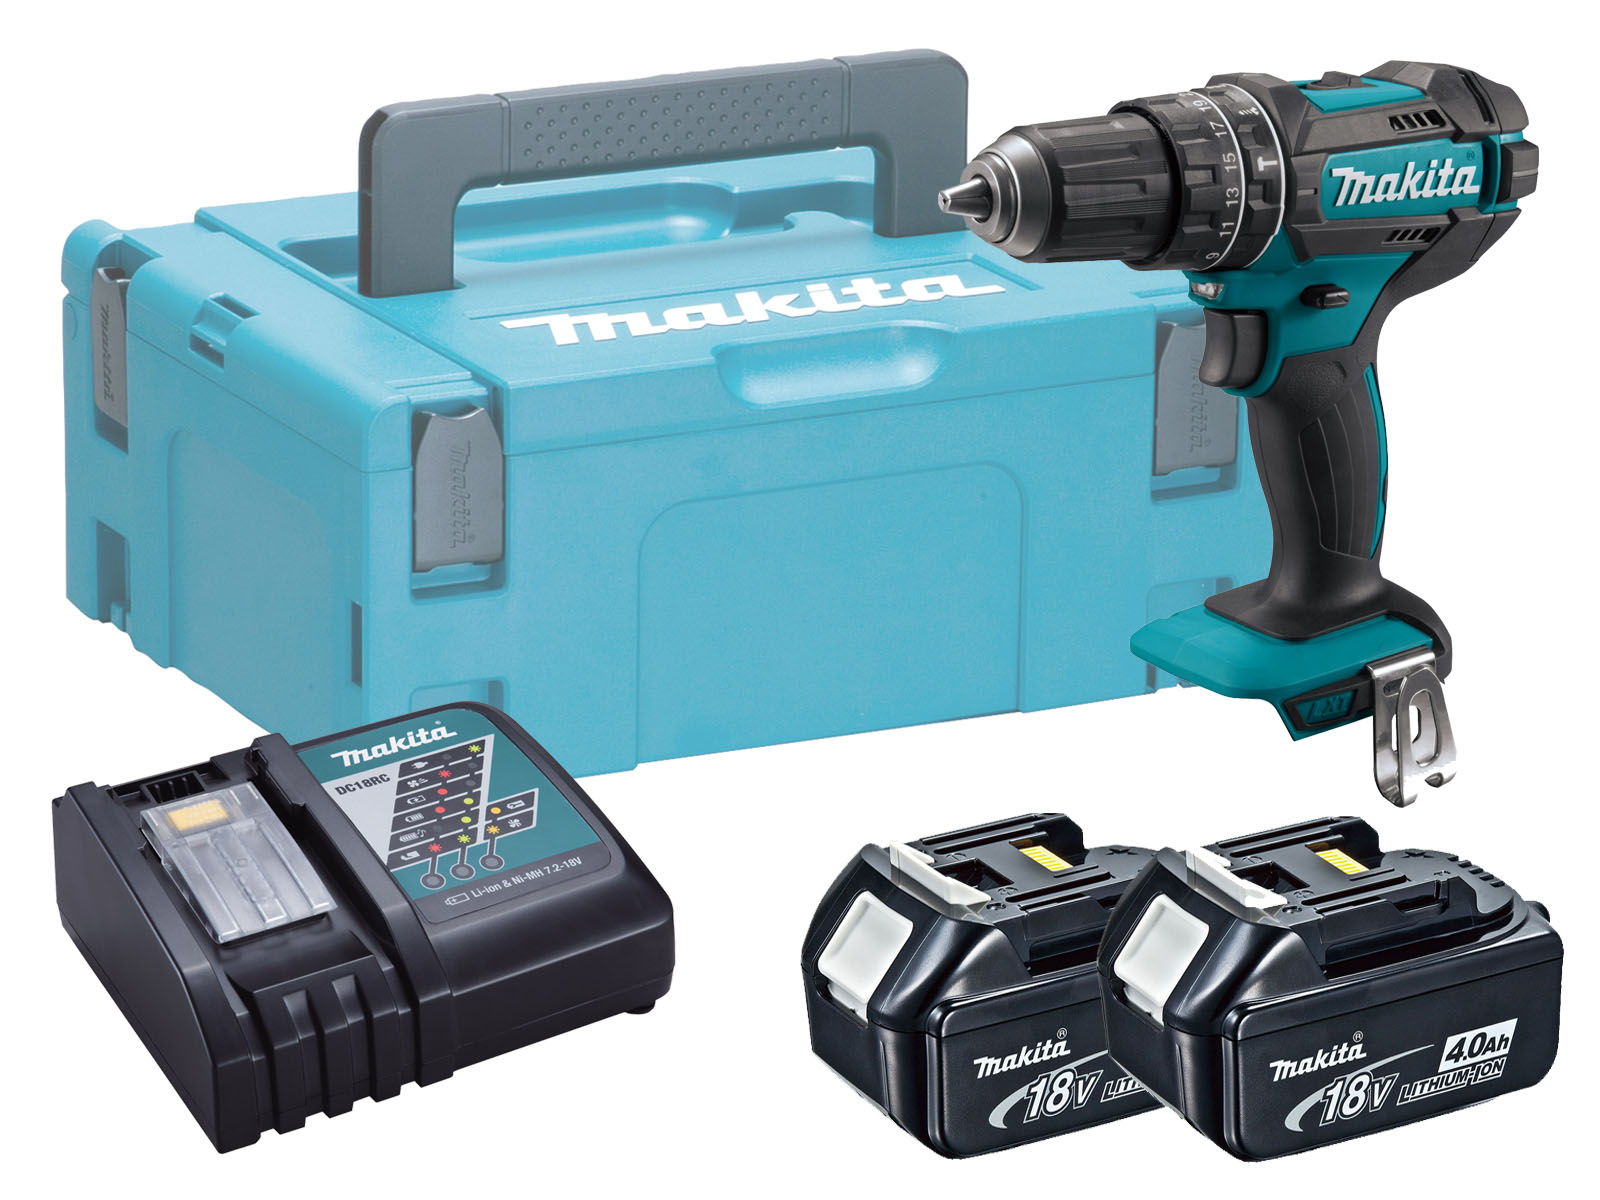 Makita DHP482 18V Combi Hammer Driver Drill Brushed - 4.0ah Pack